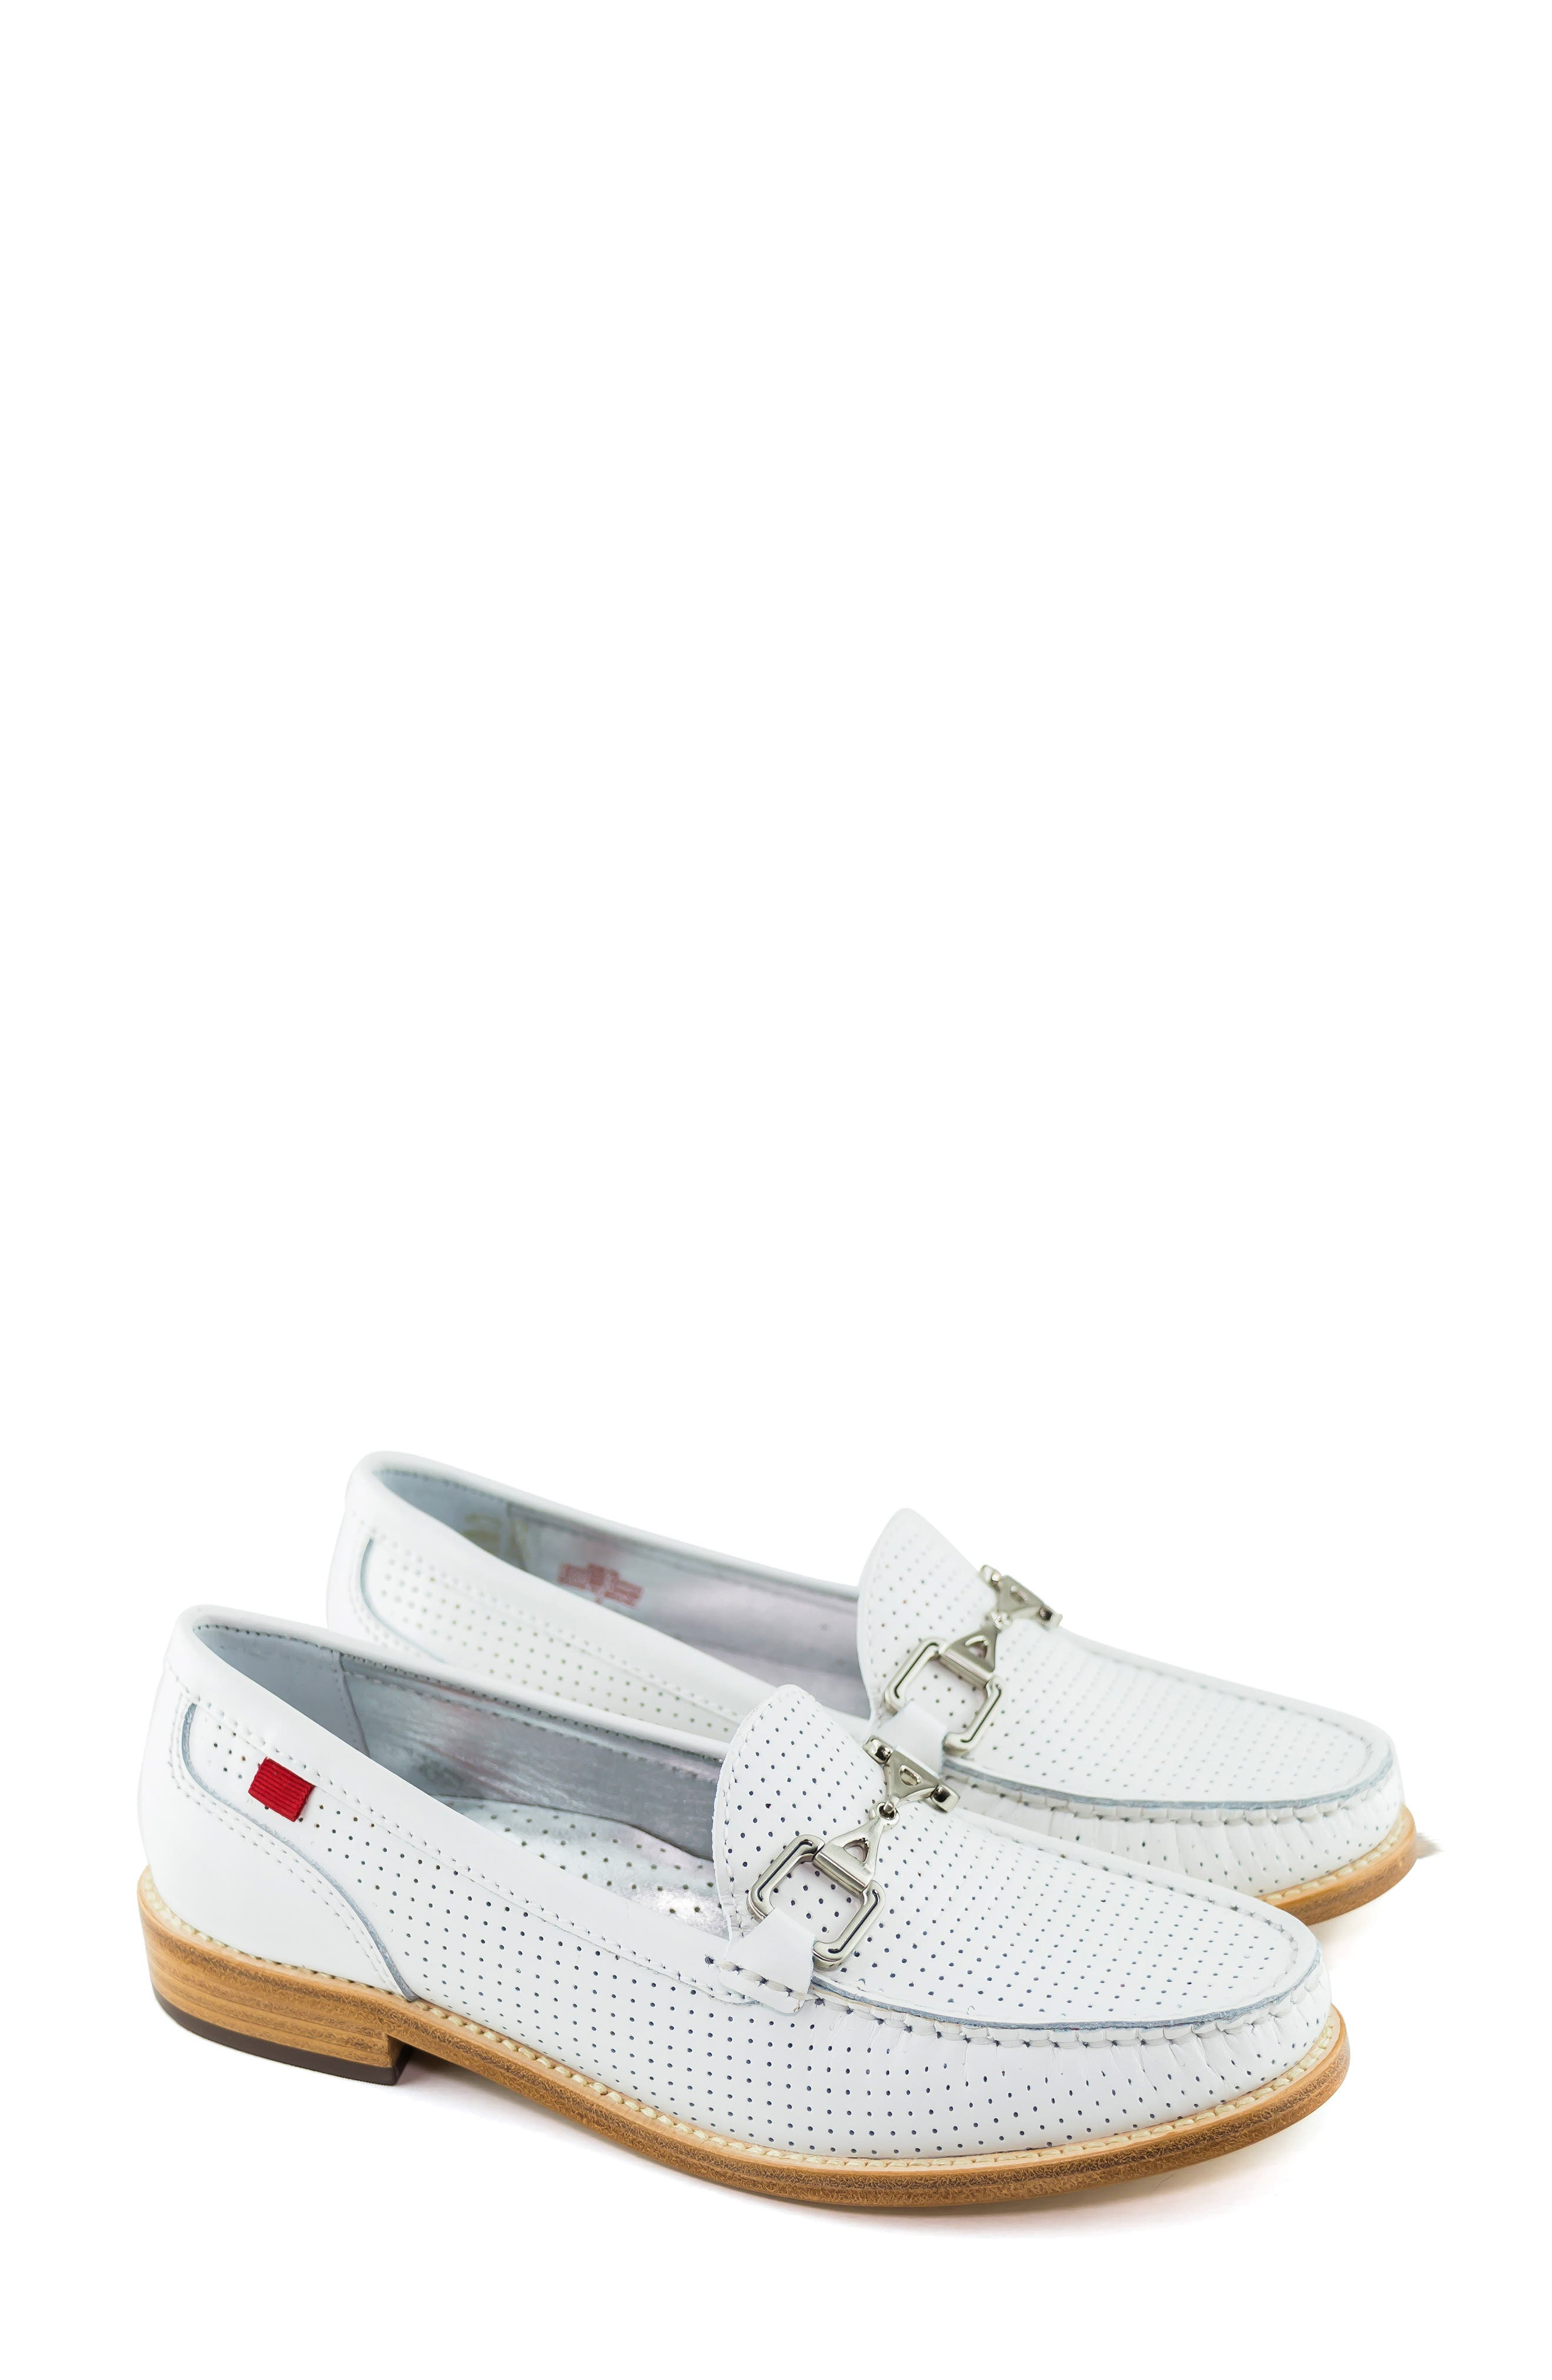 MARC JOSEPH NEW YORK, Park Ave Perforated Loafer, Alternate thumbnail 7, color, WHITE LEATHER